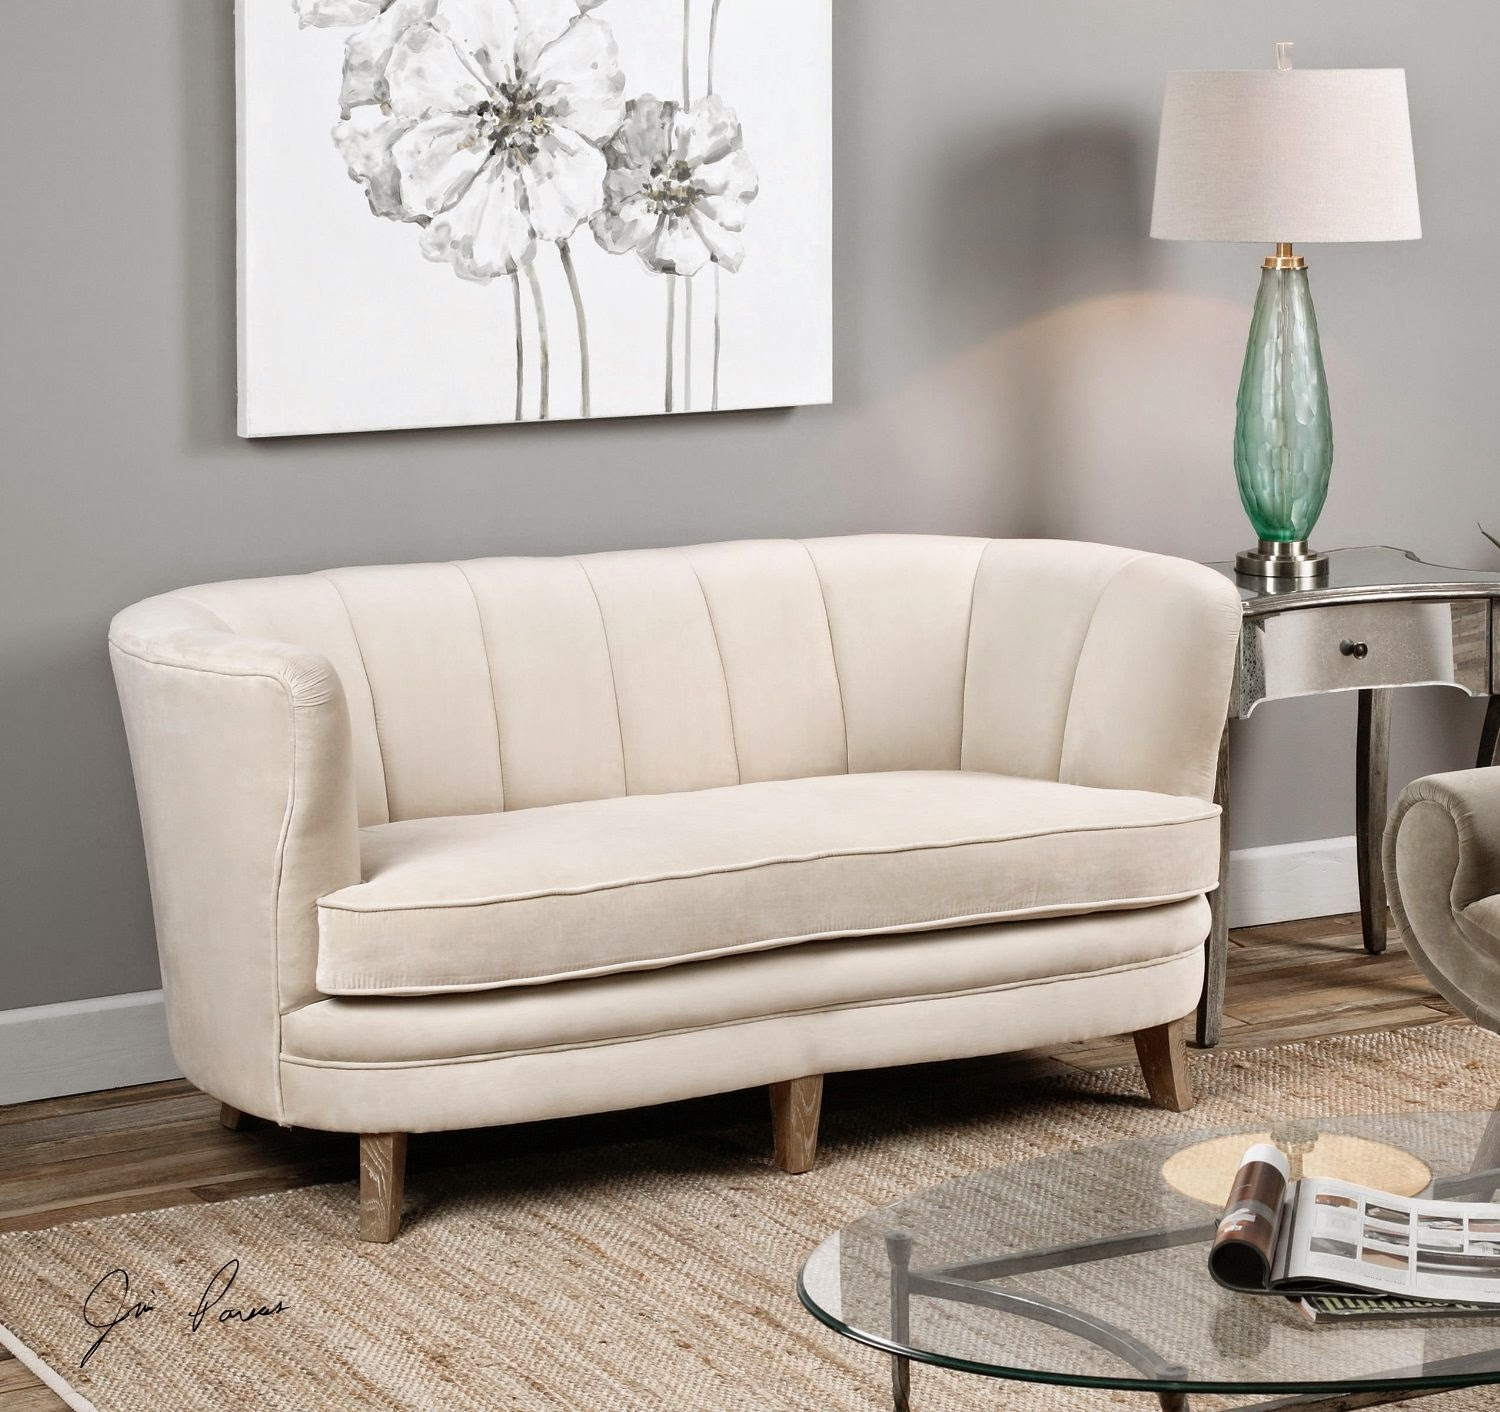 curved sofas and loveseats reviews curved back sofa. Black Bedroom Furniture Sets. Home Design Ideas